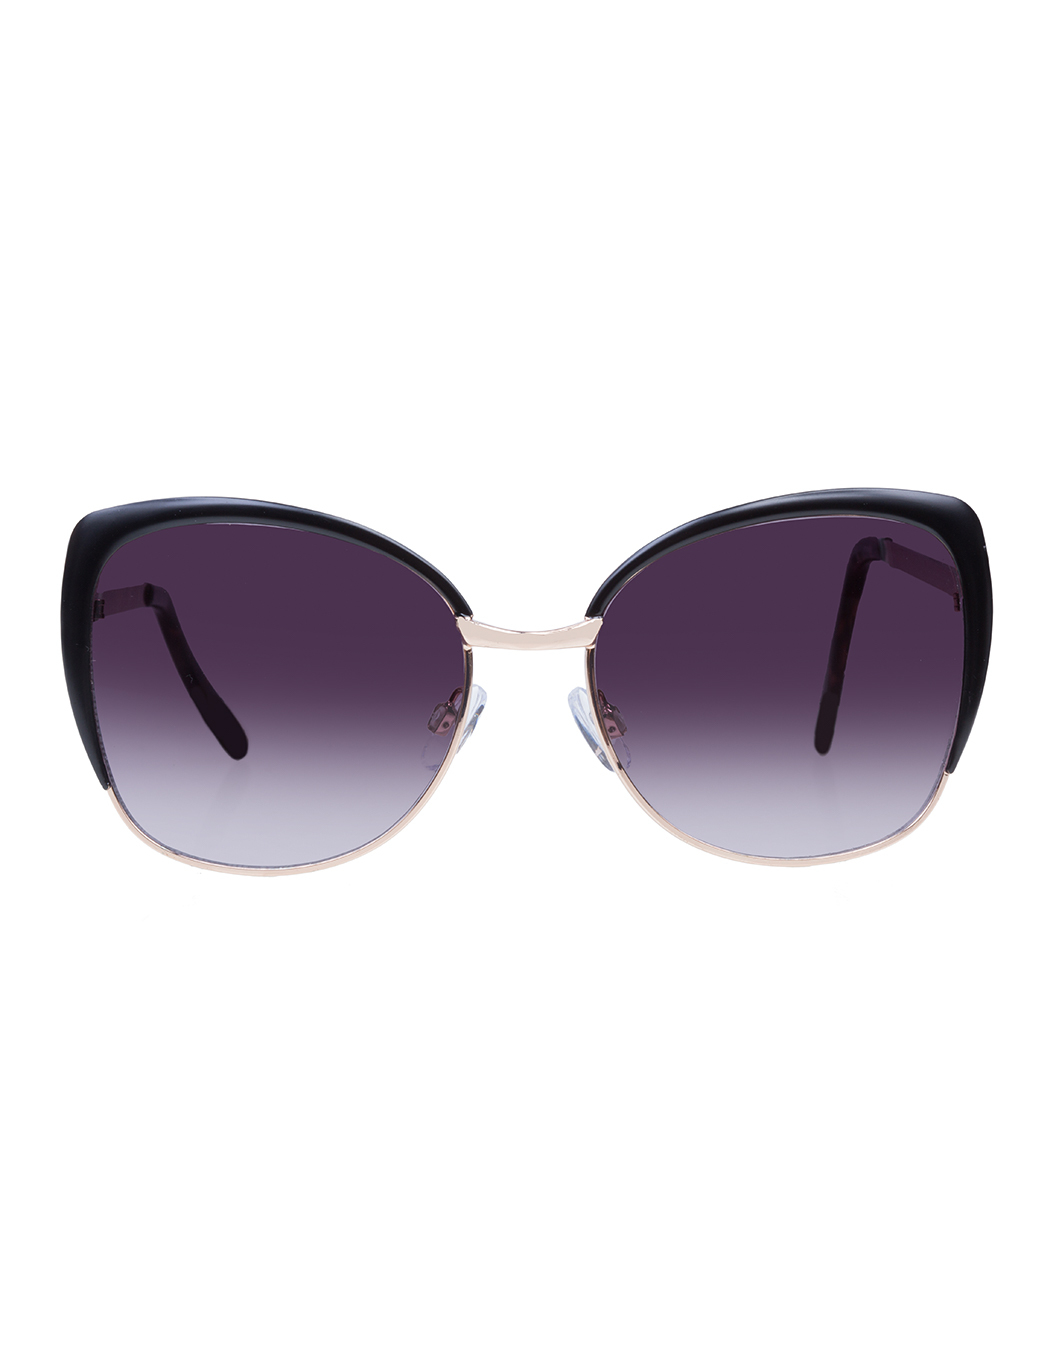 eloquii-square-cat-eye-sunglasses-29.90-.jpg